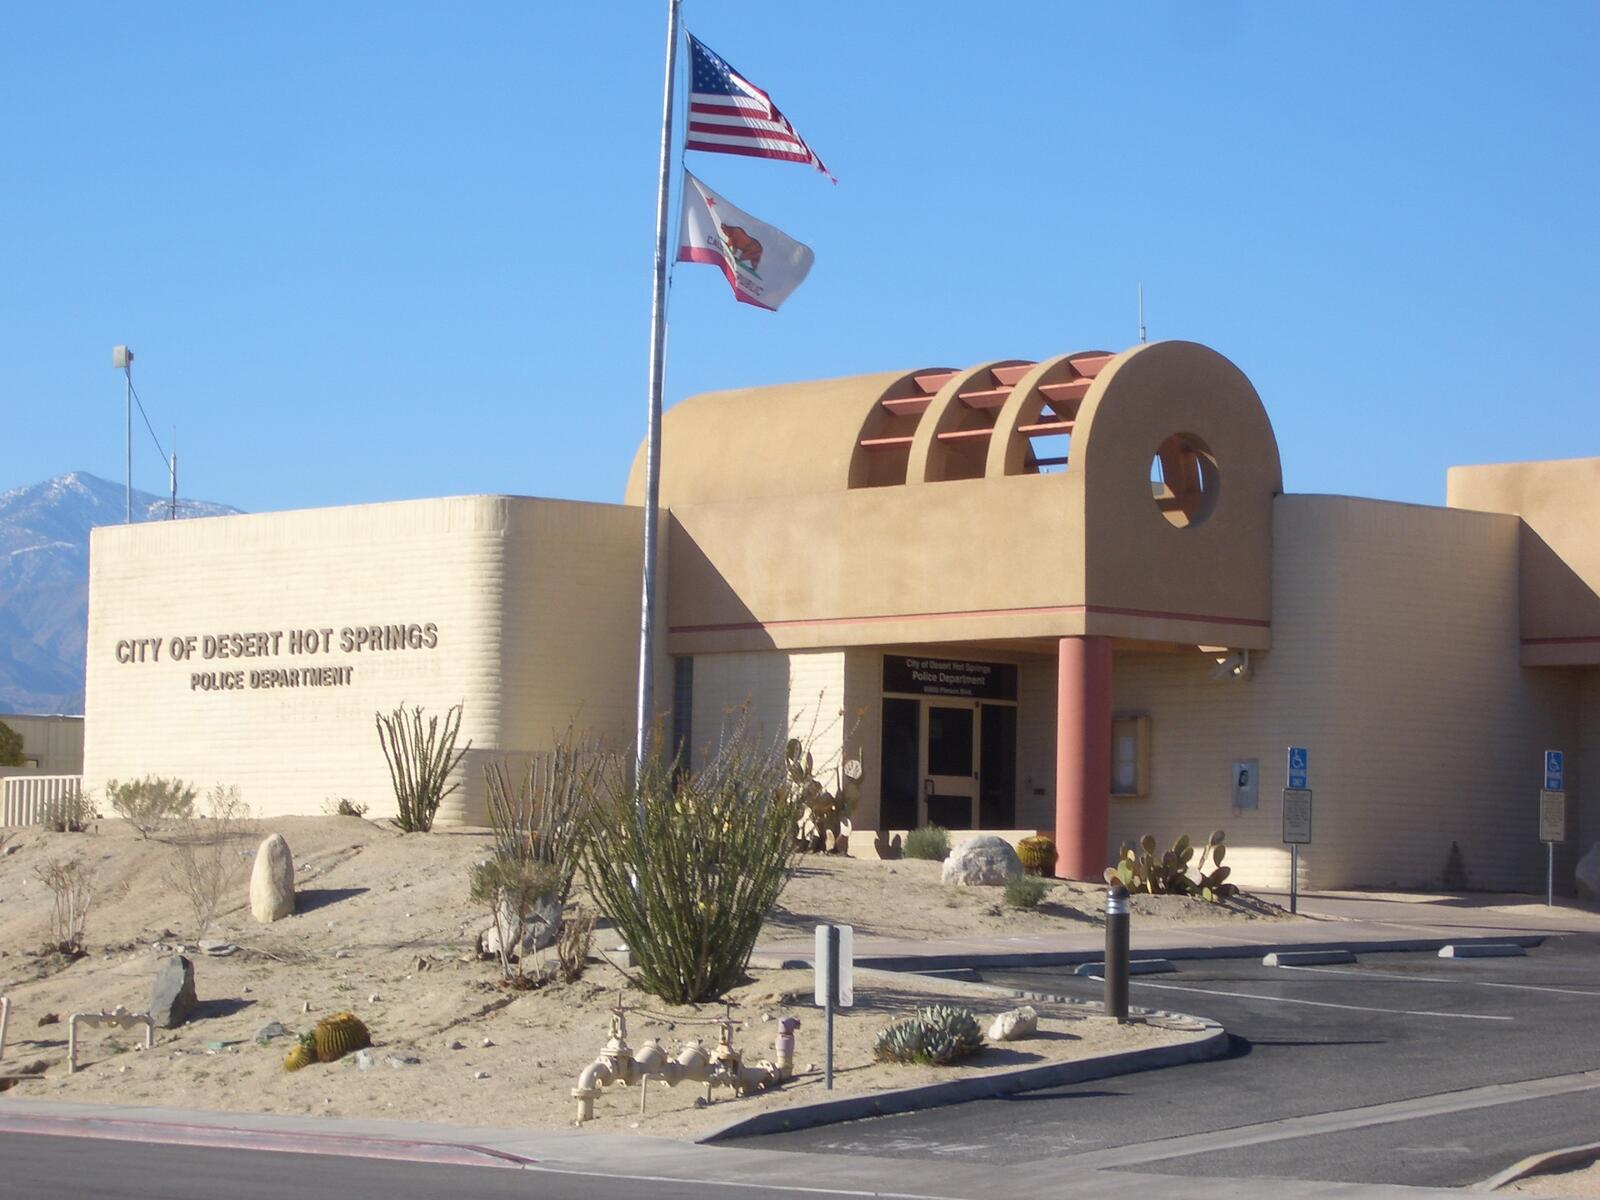 Desert Hot Springs Police Department - 793 Crime and Safety updates